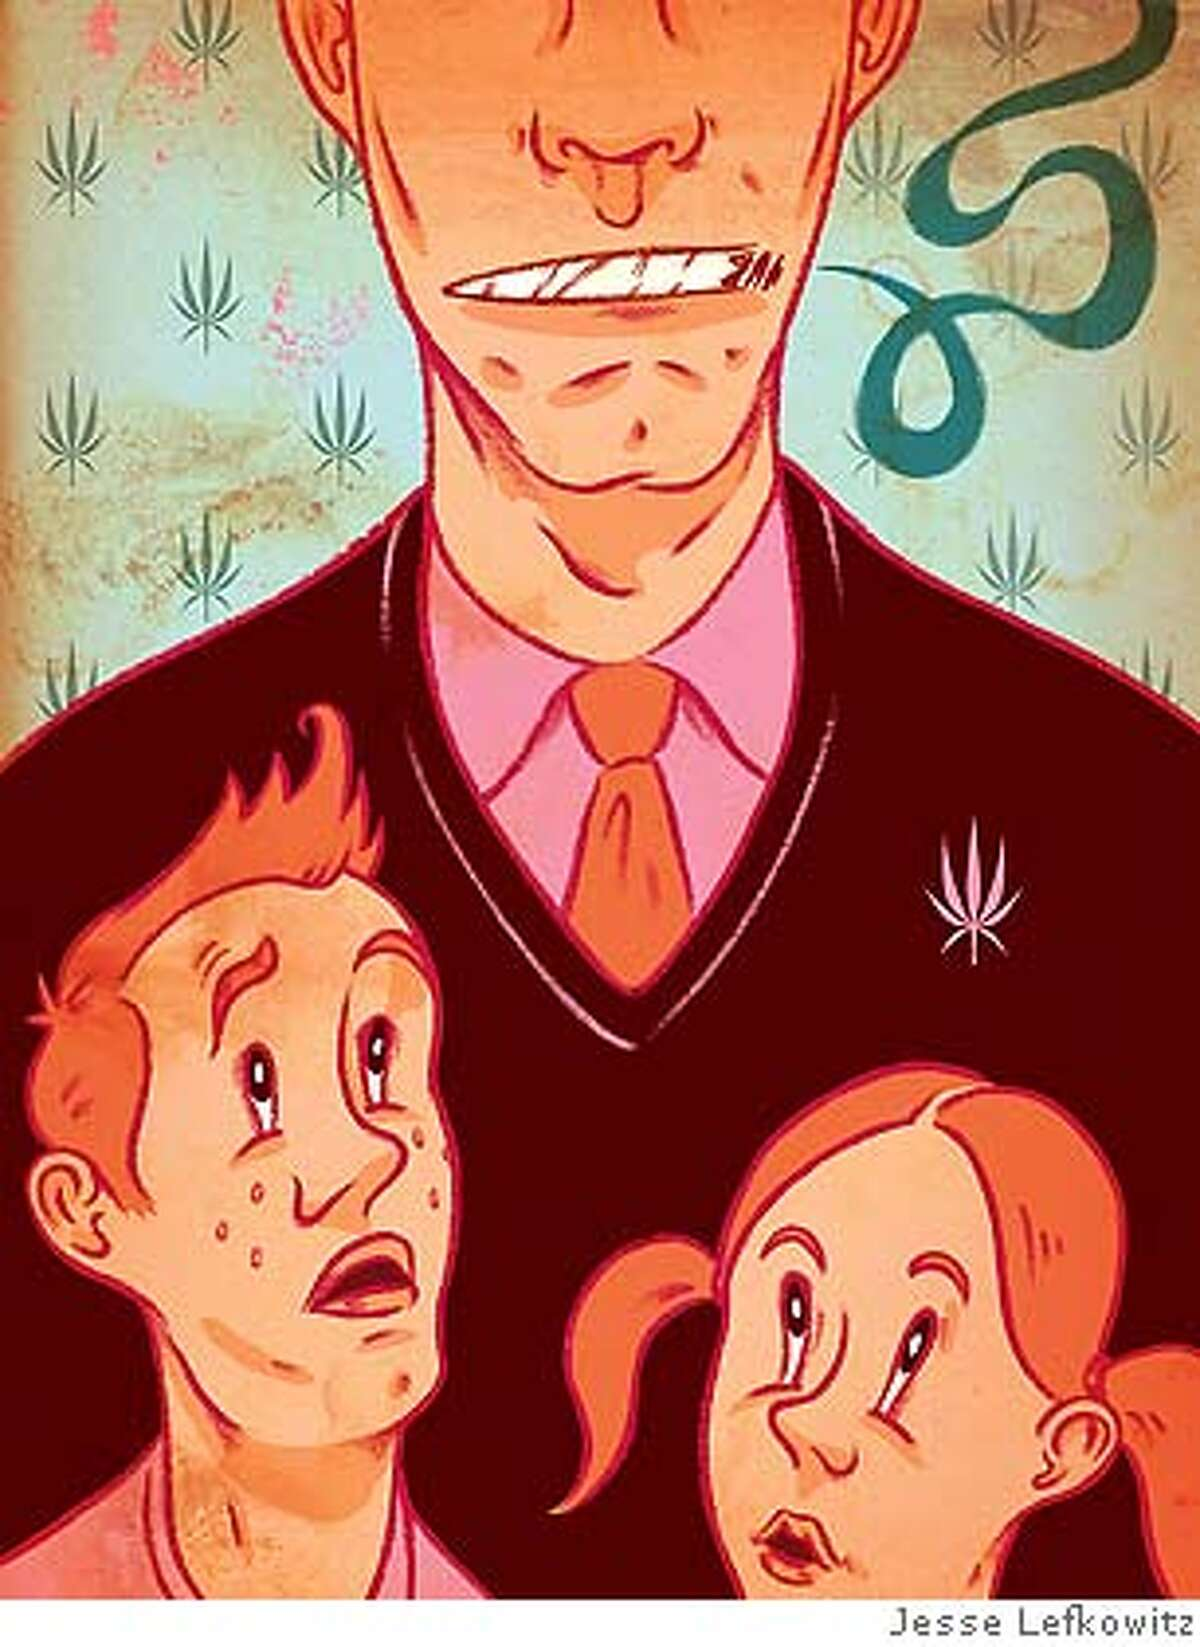 Illustration to run with Garofoli article in April 22, 2007, issue of Sunday magazine about parents who juggle their own drug use with raising children